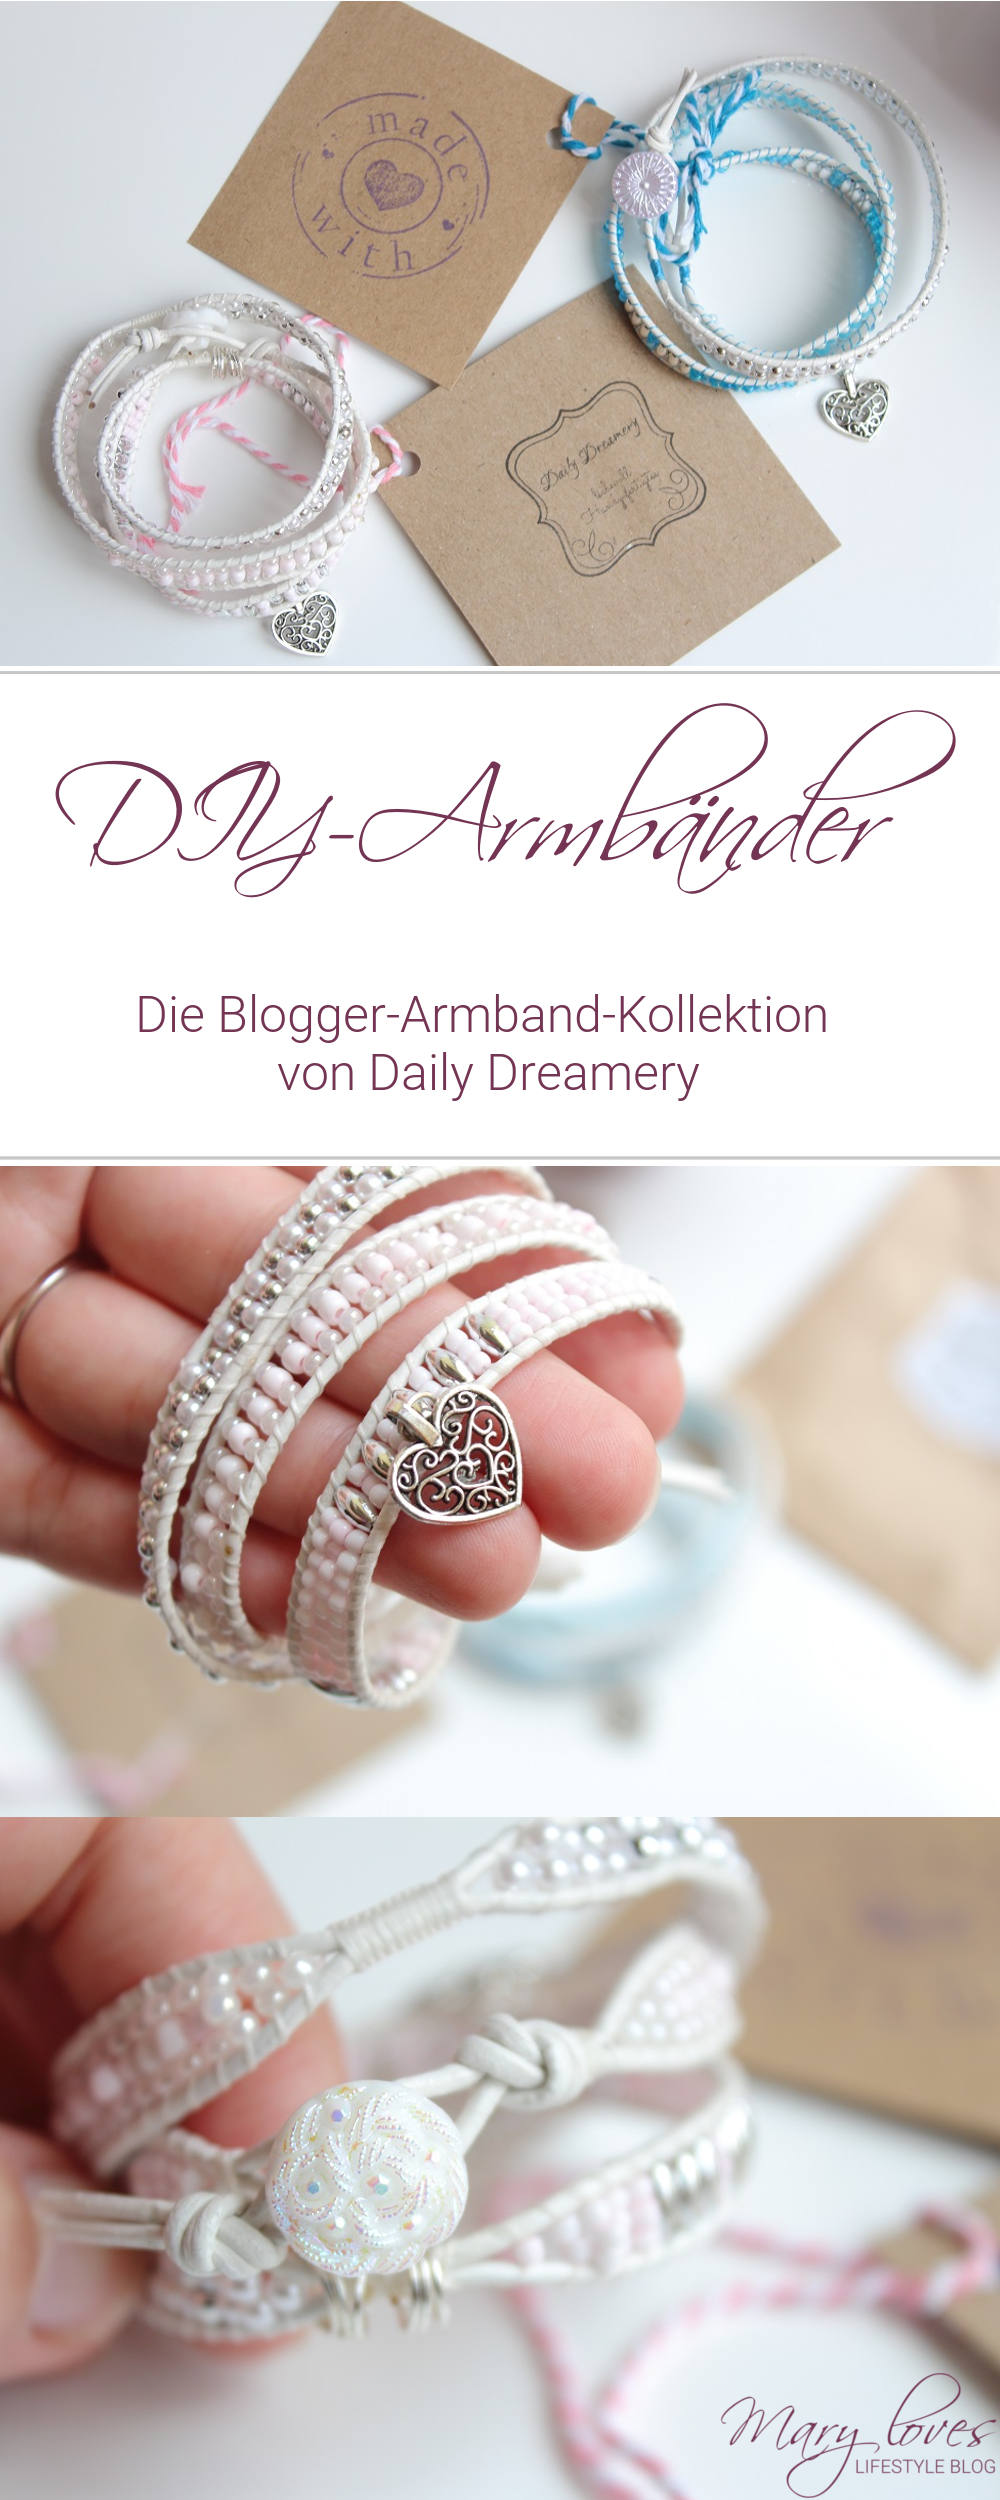 [Blogger-Armband-Kollektion] Holt euch Mary Loves als Armband -DIY